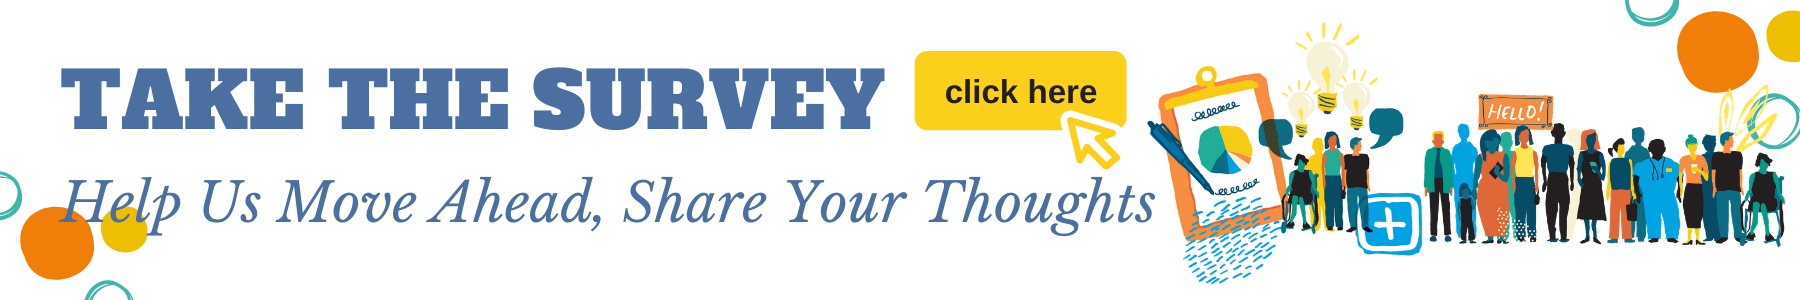 Take the survey. Help us move ahead, share your thoughts. Click here to take survey